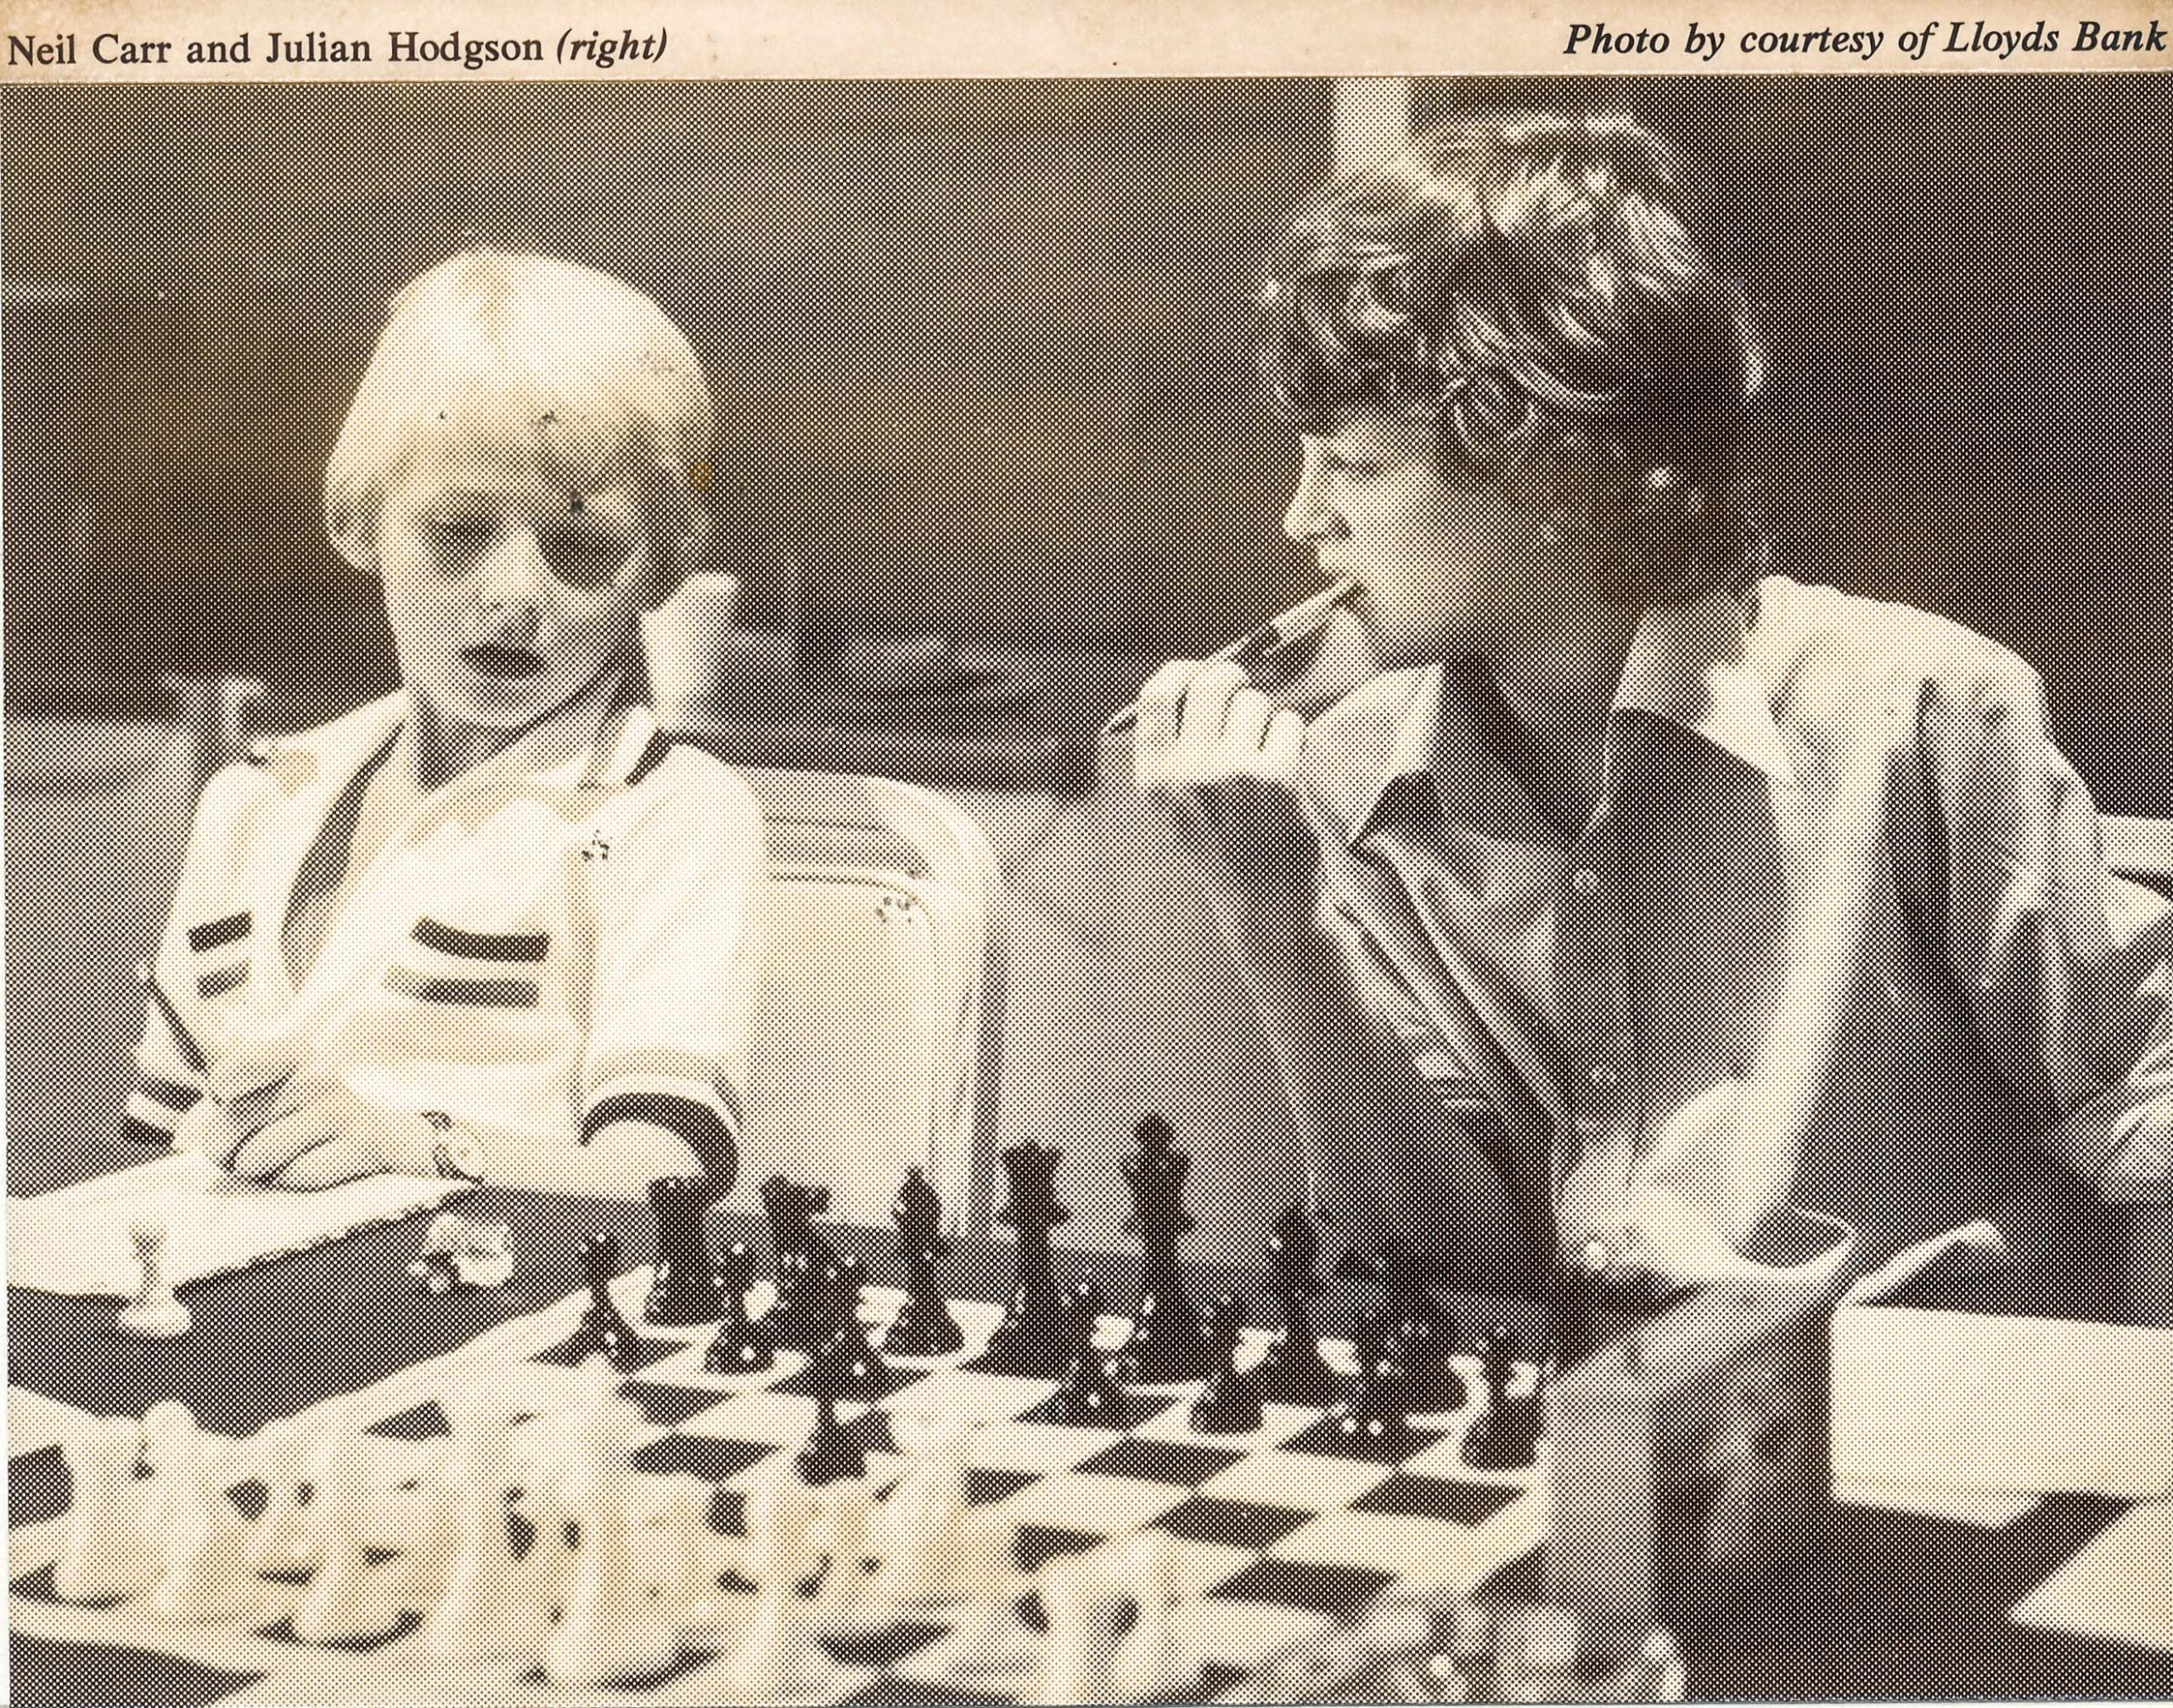 Neil Carr and Julian Hodgson at the 1976 Lloyds Bank Match by Telex, London - New York. From BCM, volume XCVI (96) Number 11 (August), Page 494. The venue was the Bloomsbury Hotel, London. Photo courtesy of Lloyds Bank.